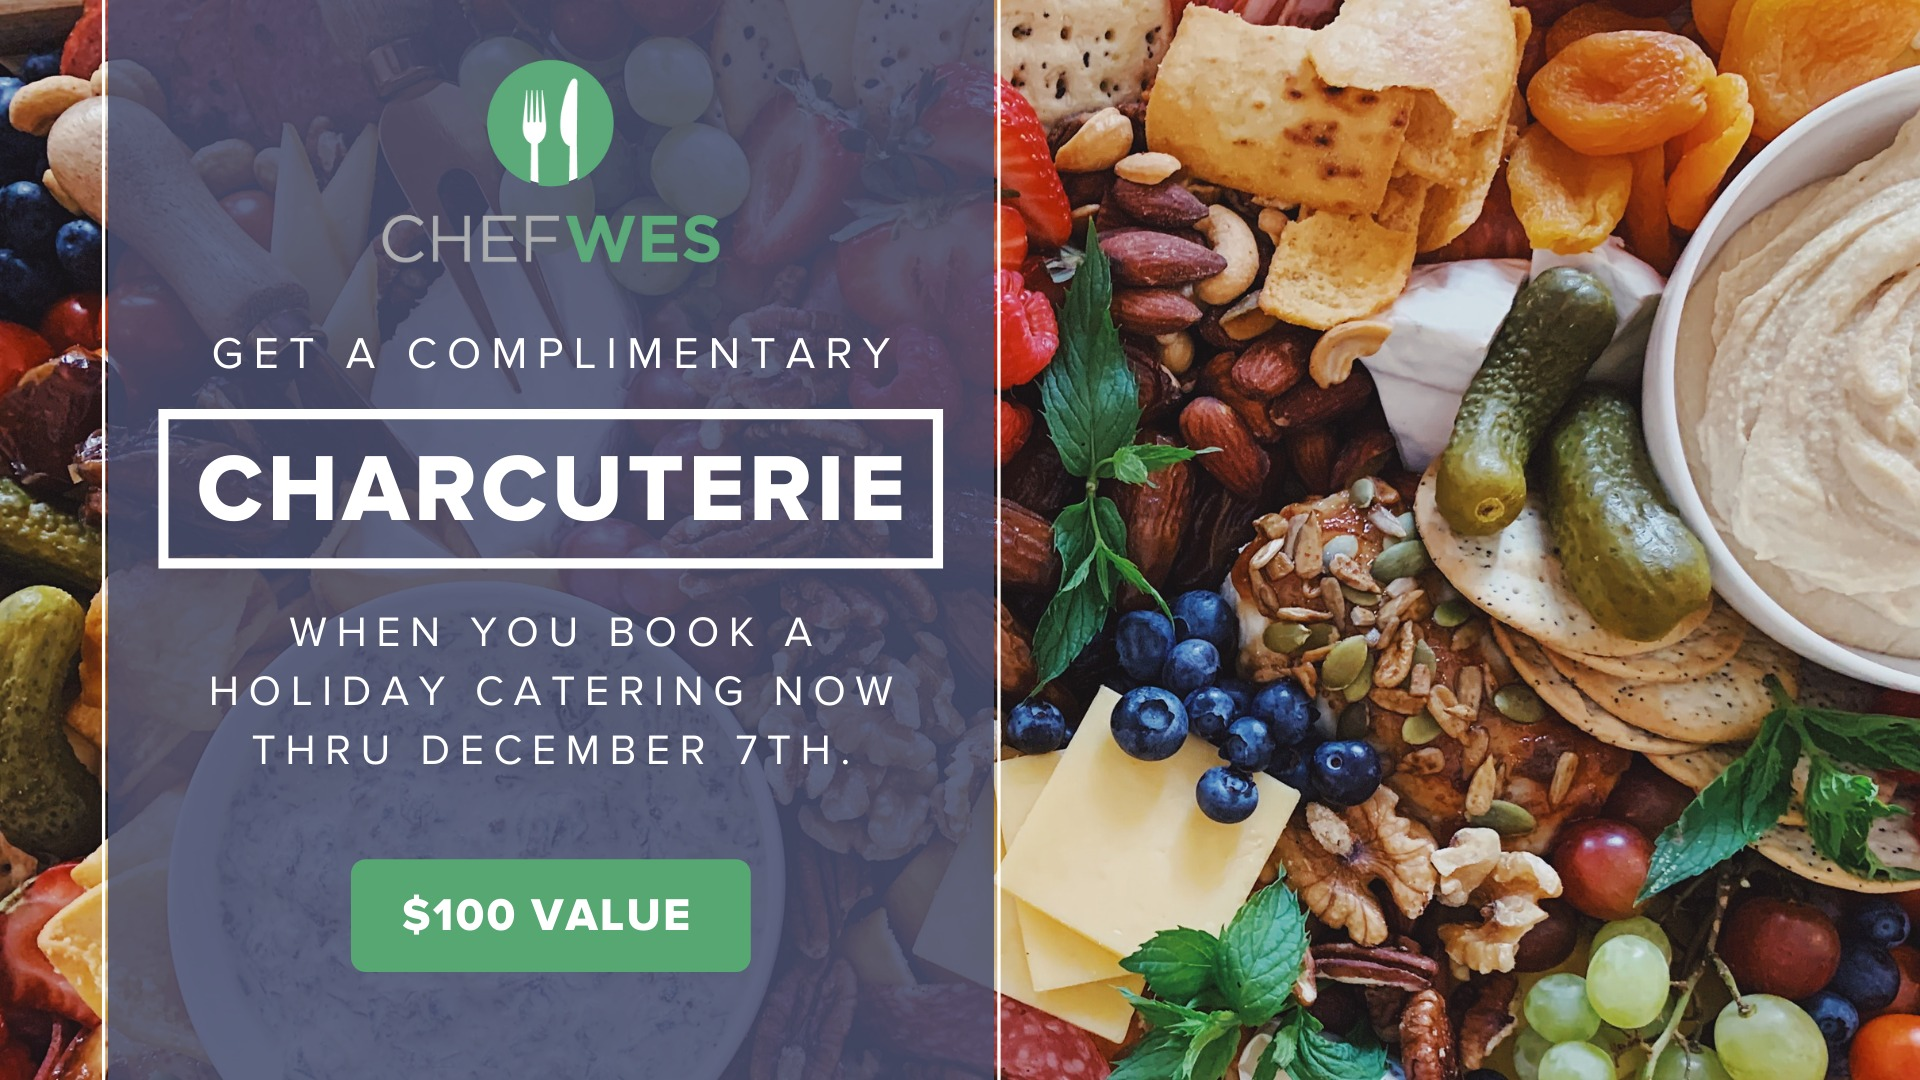 Get a complimentary Charcuterie when you book a holiday catering now thru December 7th.